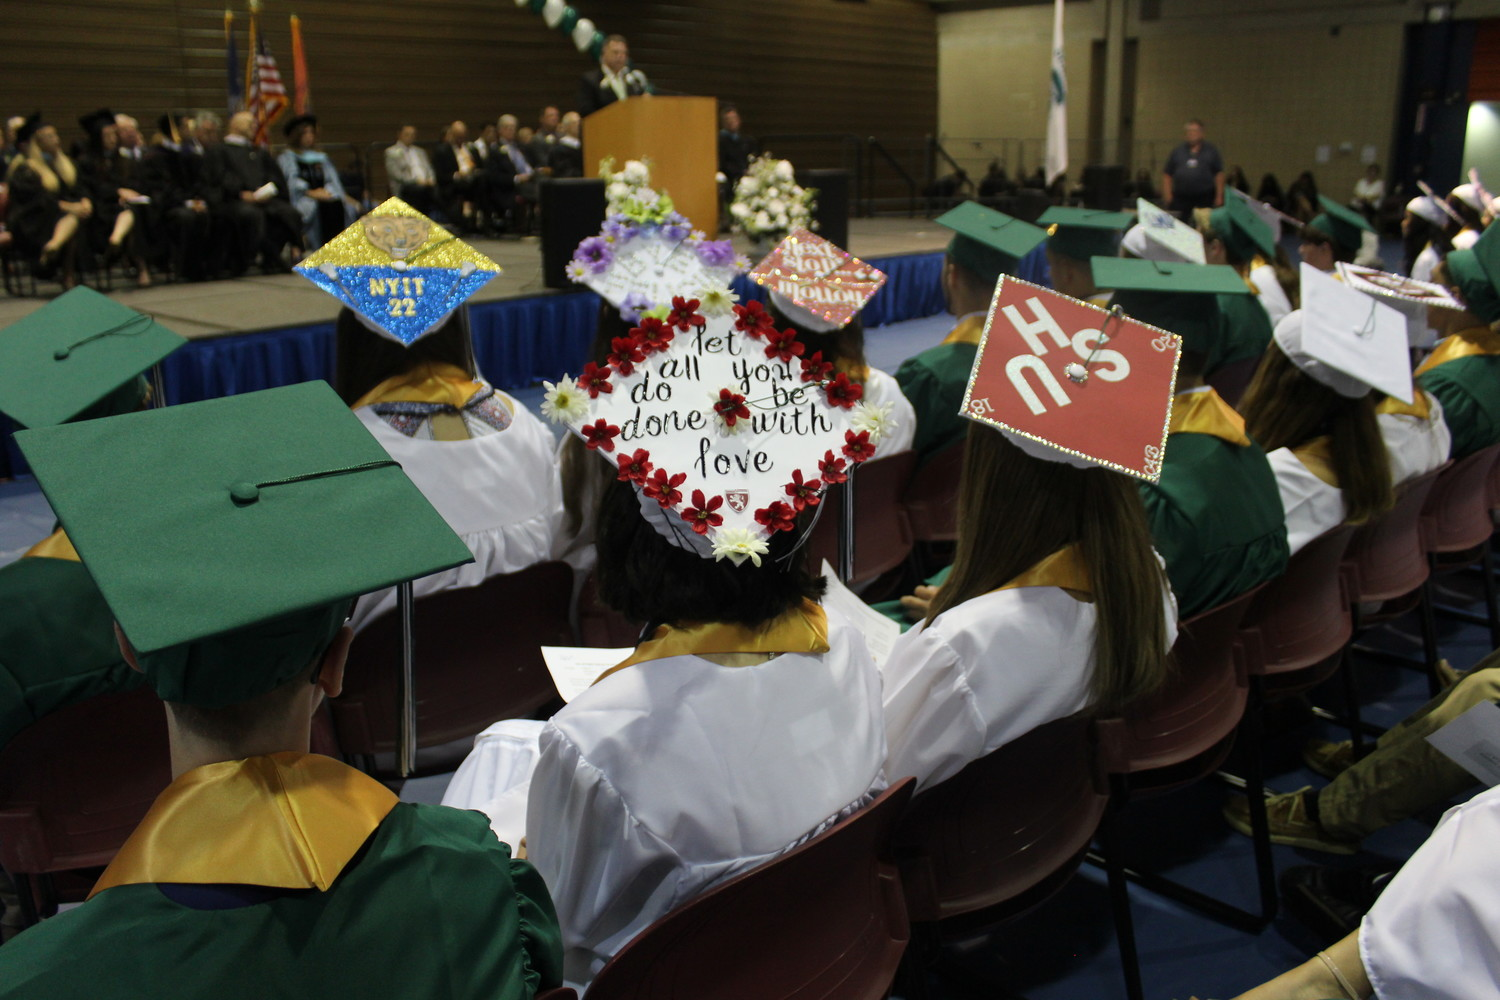 While some Seaford graduates kept their green hats pristine, others saw them as empty canvases or message boards.